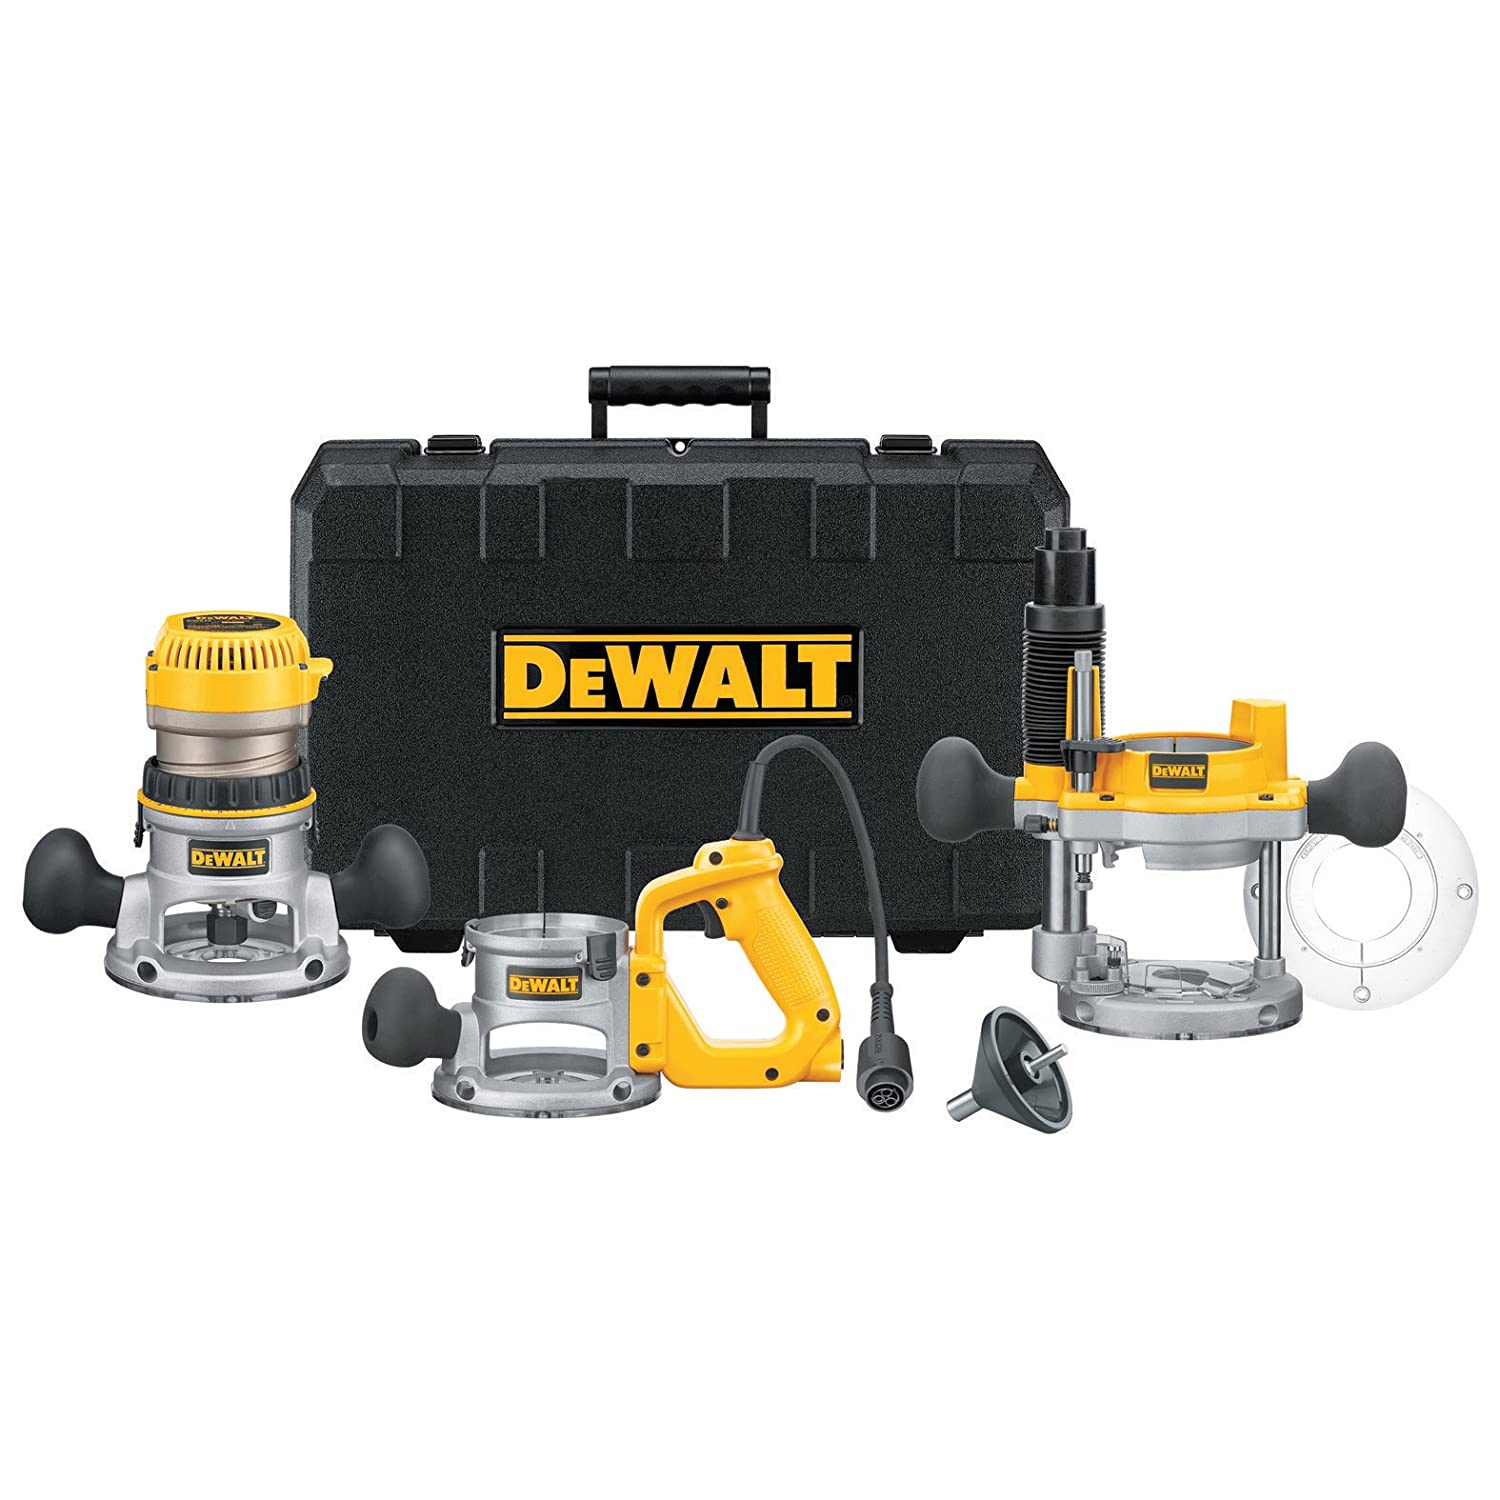 DEWALT DW618B3 12 Amp 2-1/4 Horsepower Plunge Base and Fixed Base by DEWALT B0000CCXU3